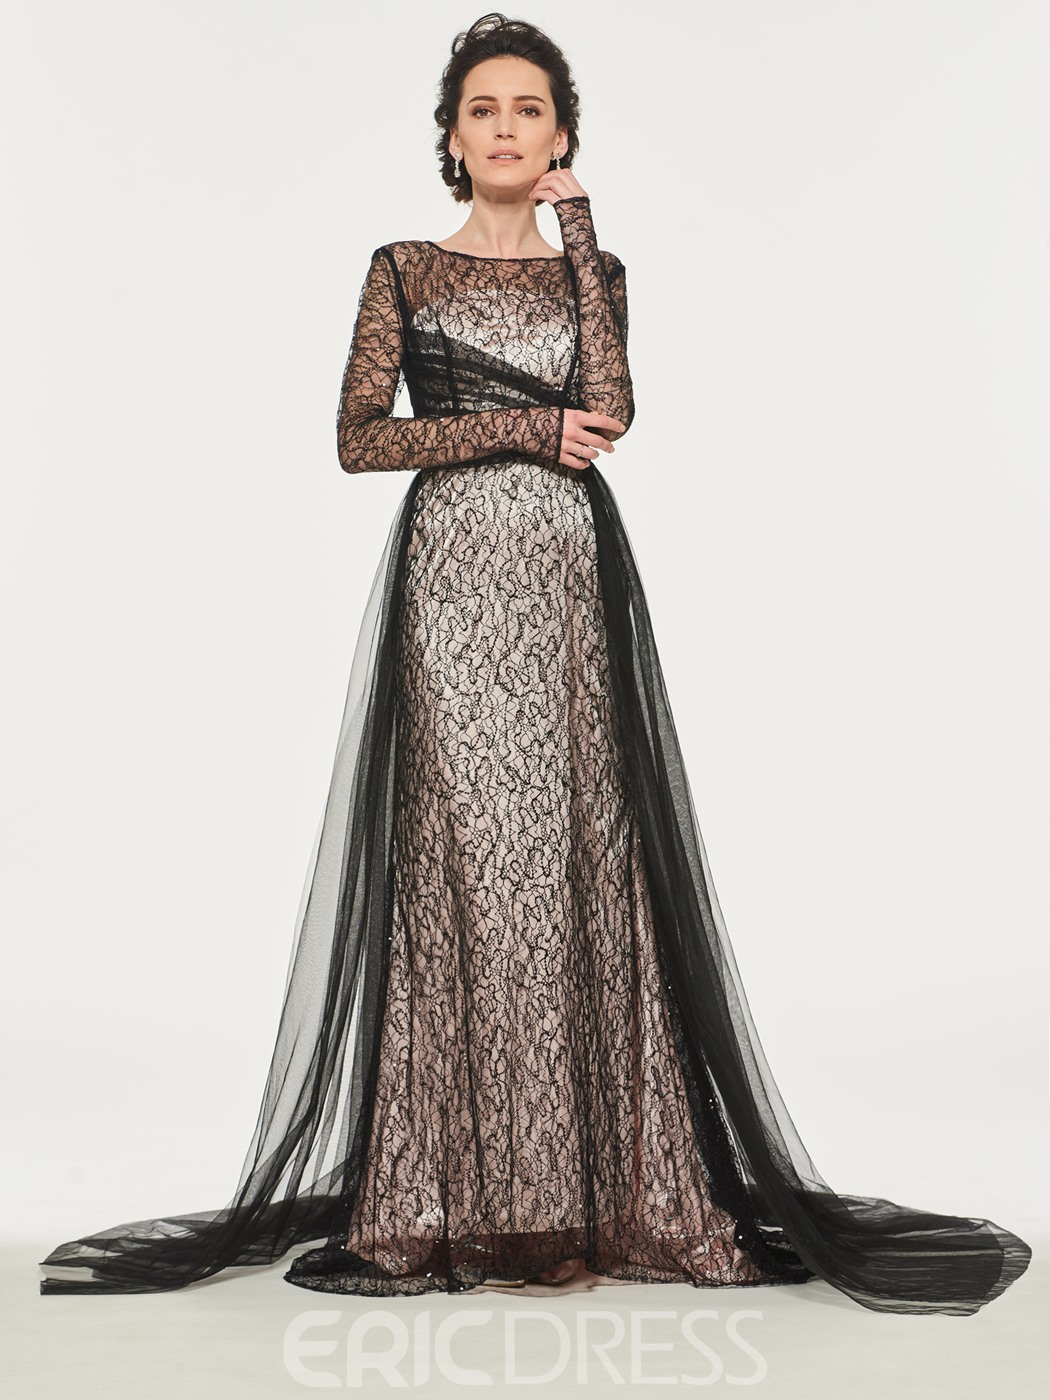 4415caf1de6 Ericdress Mermaid Lace Long Sleeves Mother of the Bride Dress ...